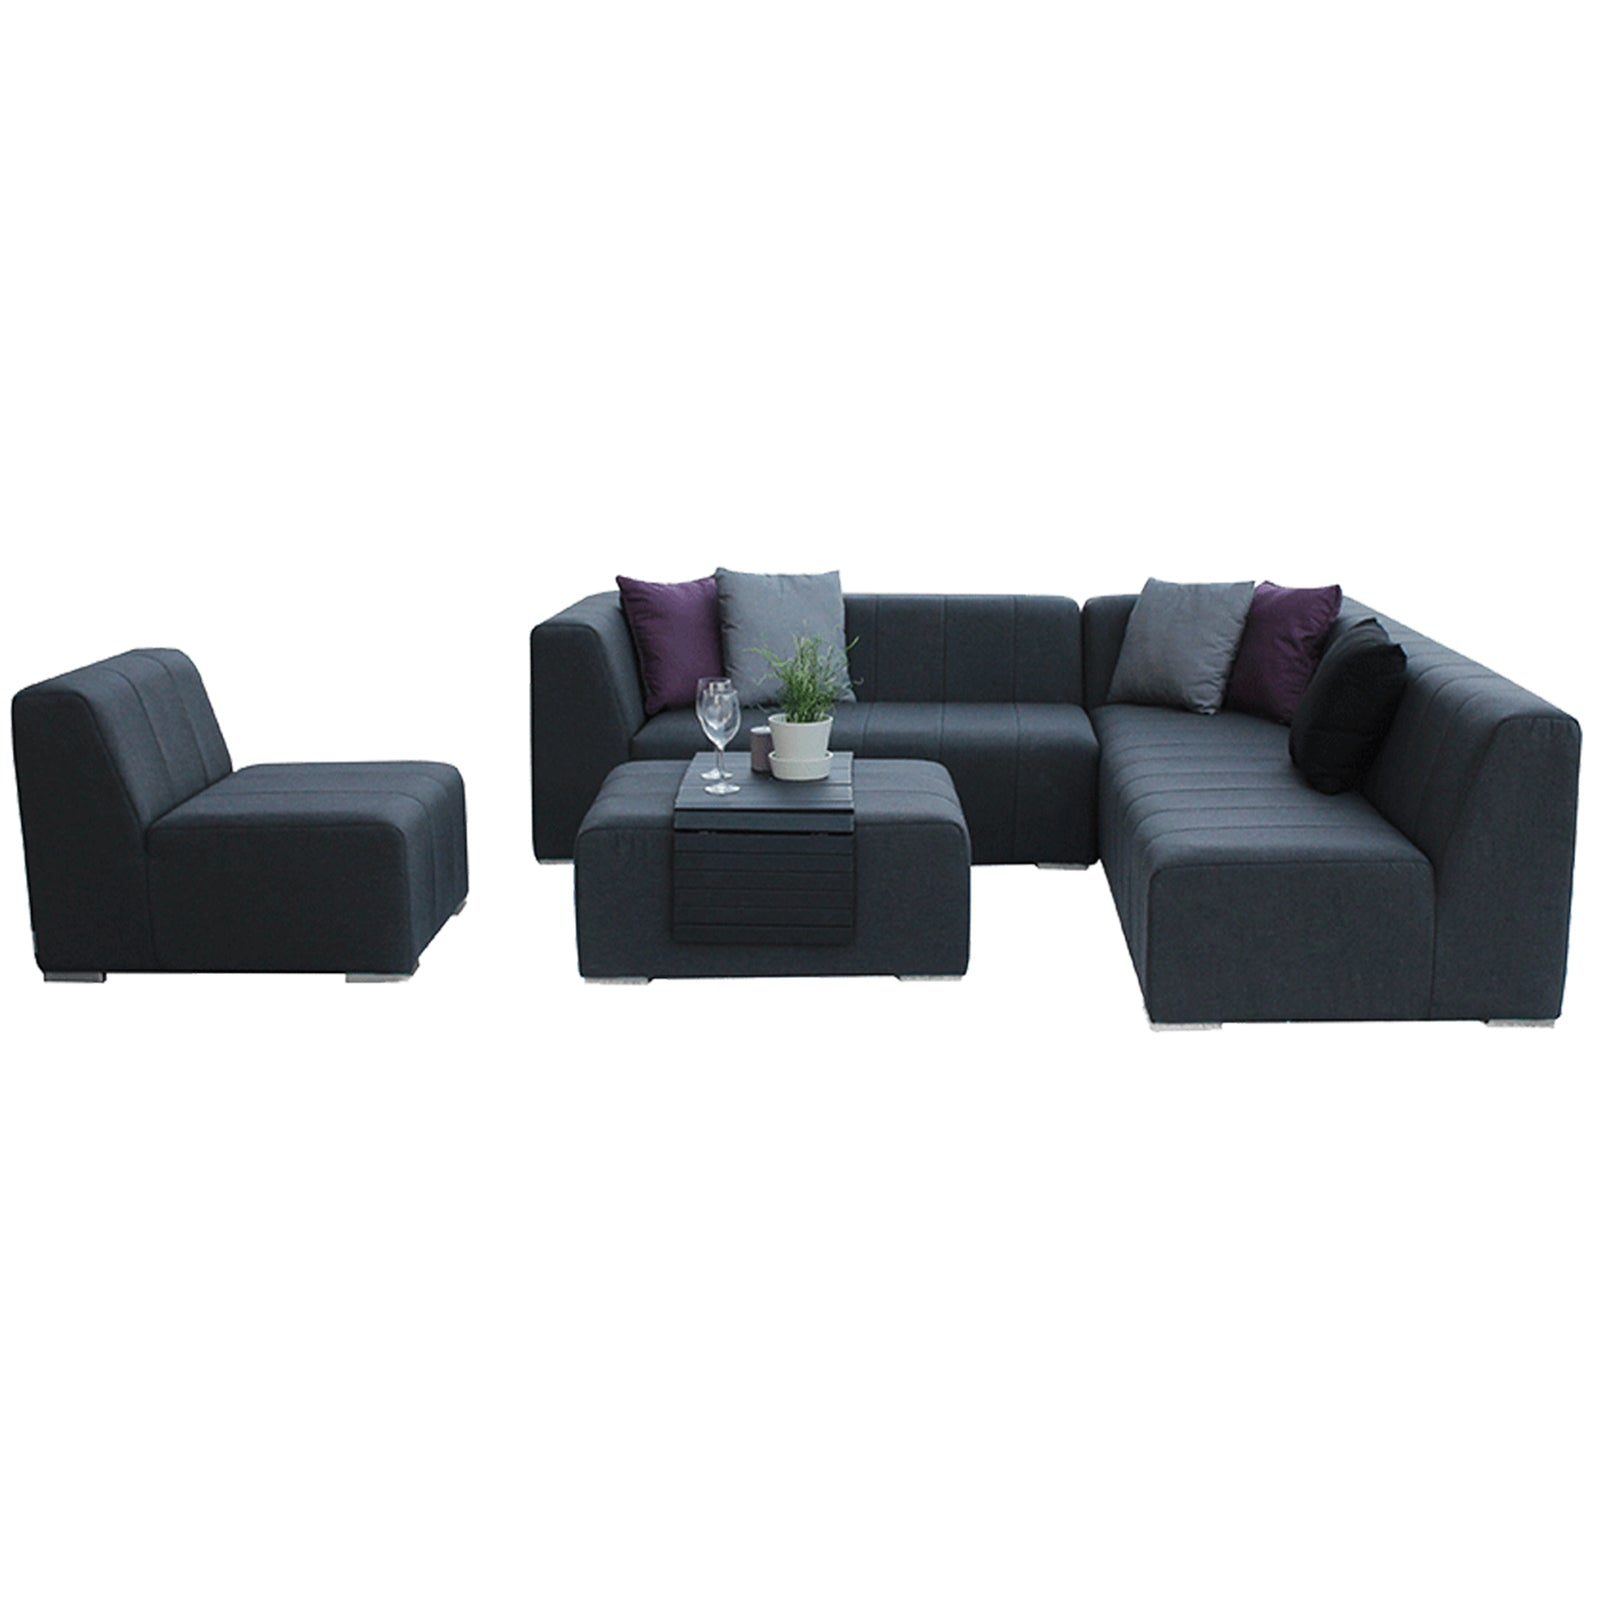 Cube Complete Corner Seating With Ottoman